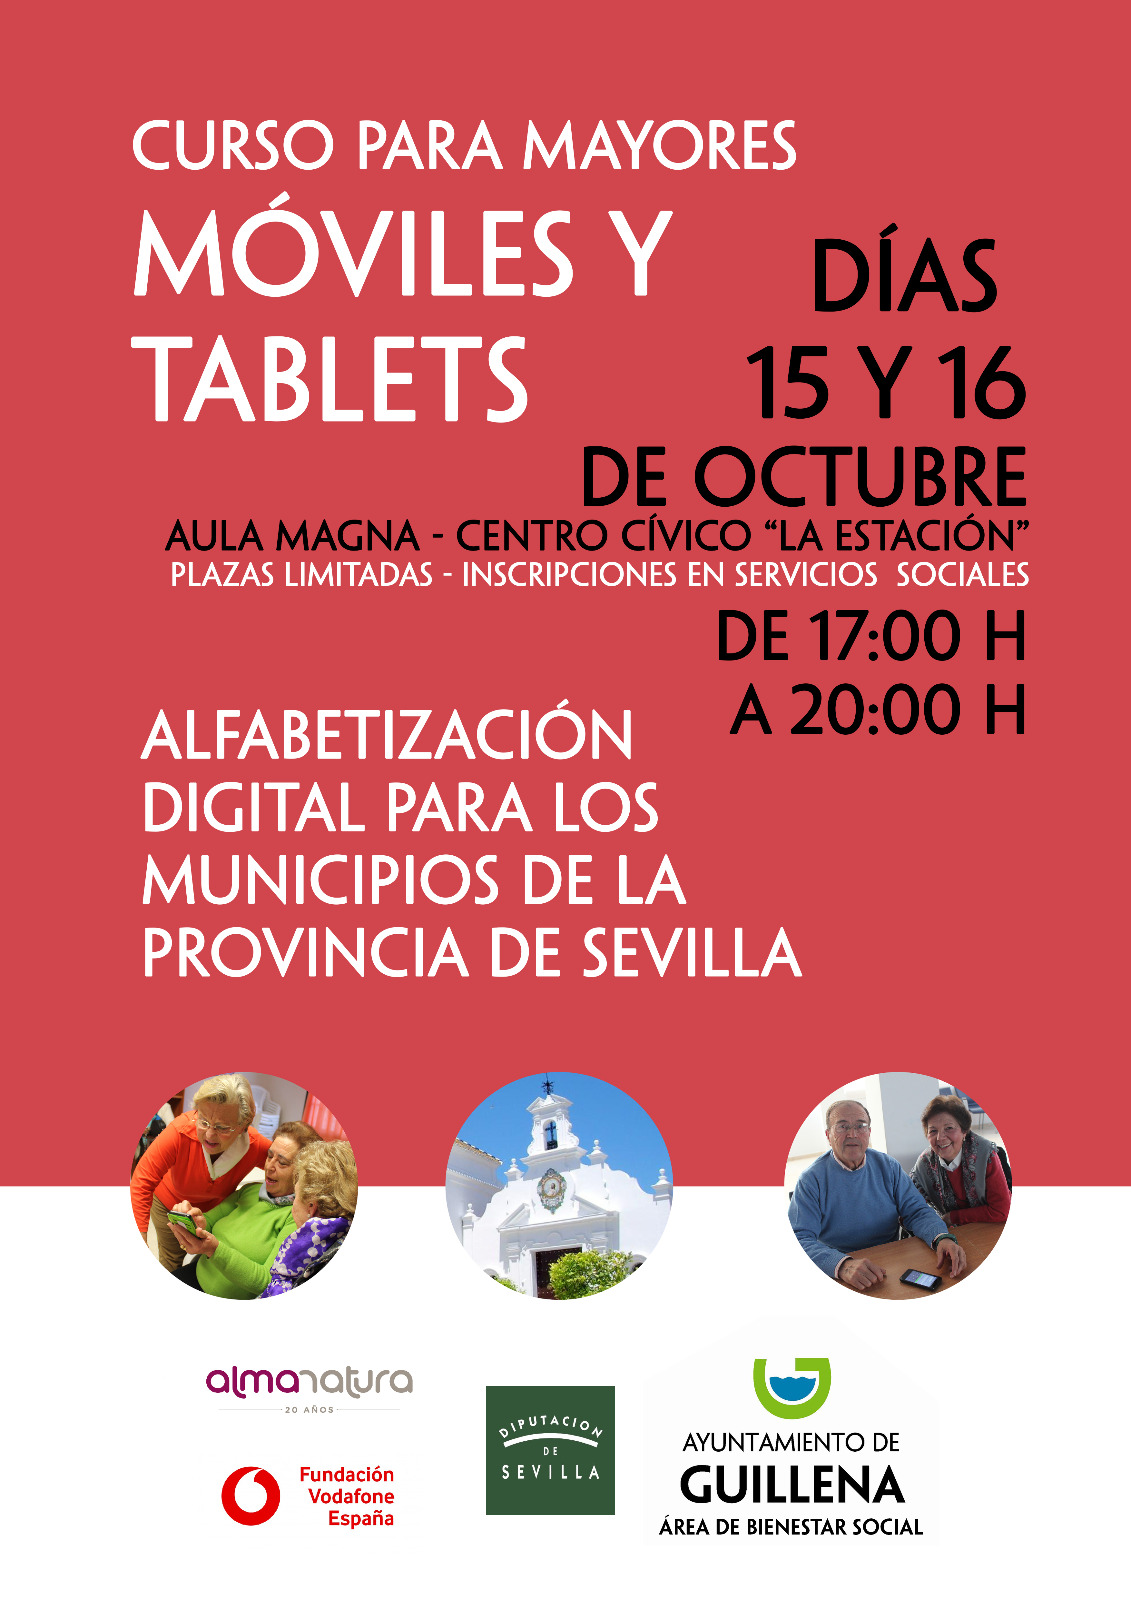 cartel cursos moviles mayores